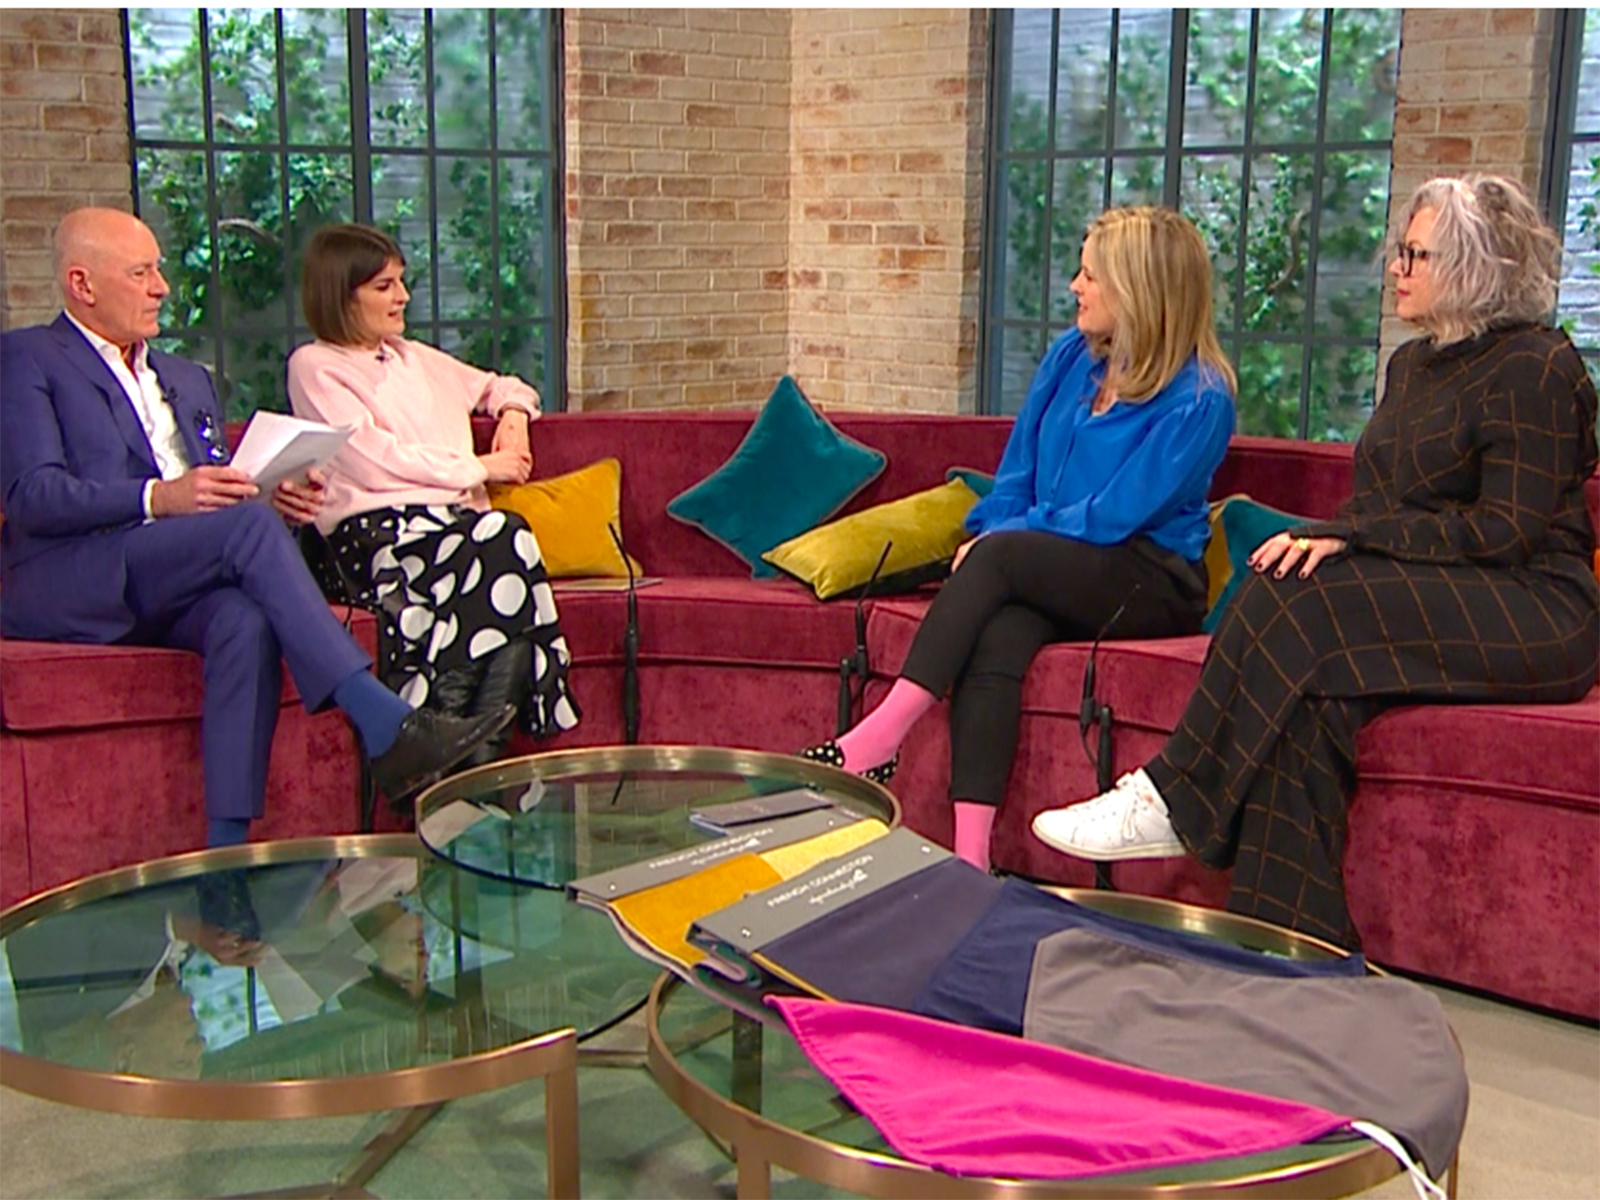 Sophie Robinson and Kate Watson-Smyth discuss The Great Indoors podcast on Ireland AM Morning show #sophierobinson #interiordesign #podcast #thegreatindoors